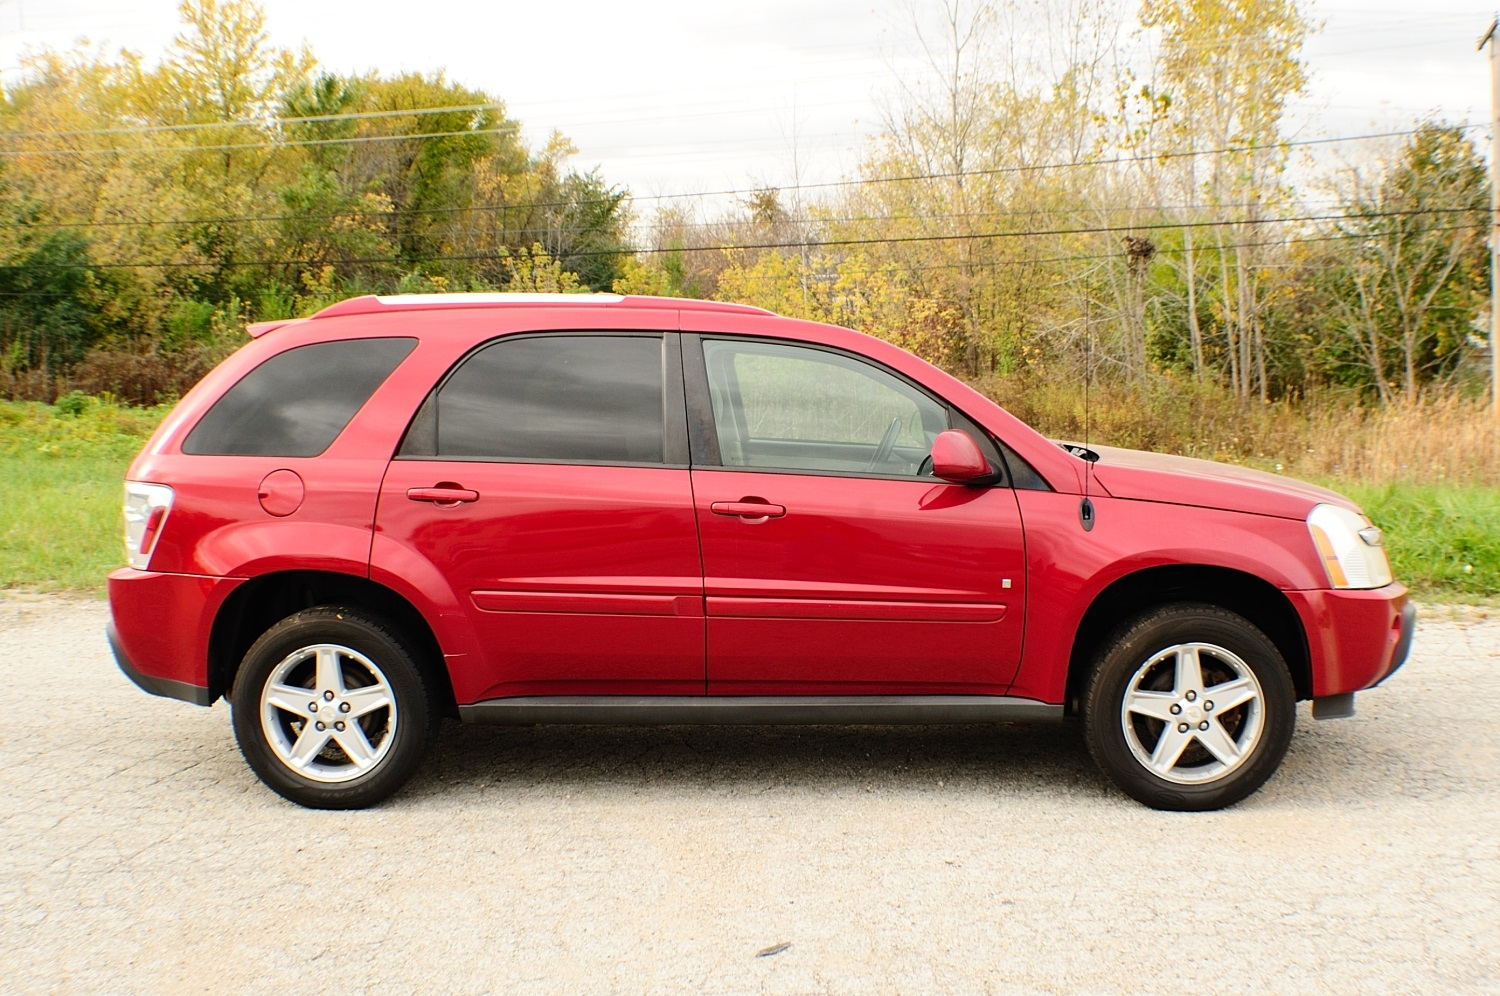 2006 chevrolet equinox lt red suv used car sale. Black Bedroom Furniture Sets. Home Design Ideas